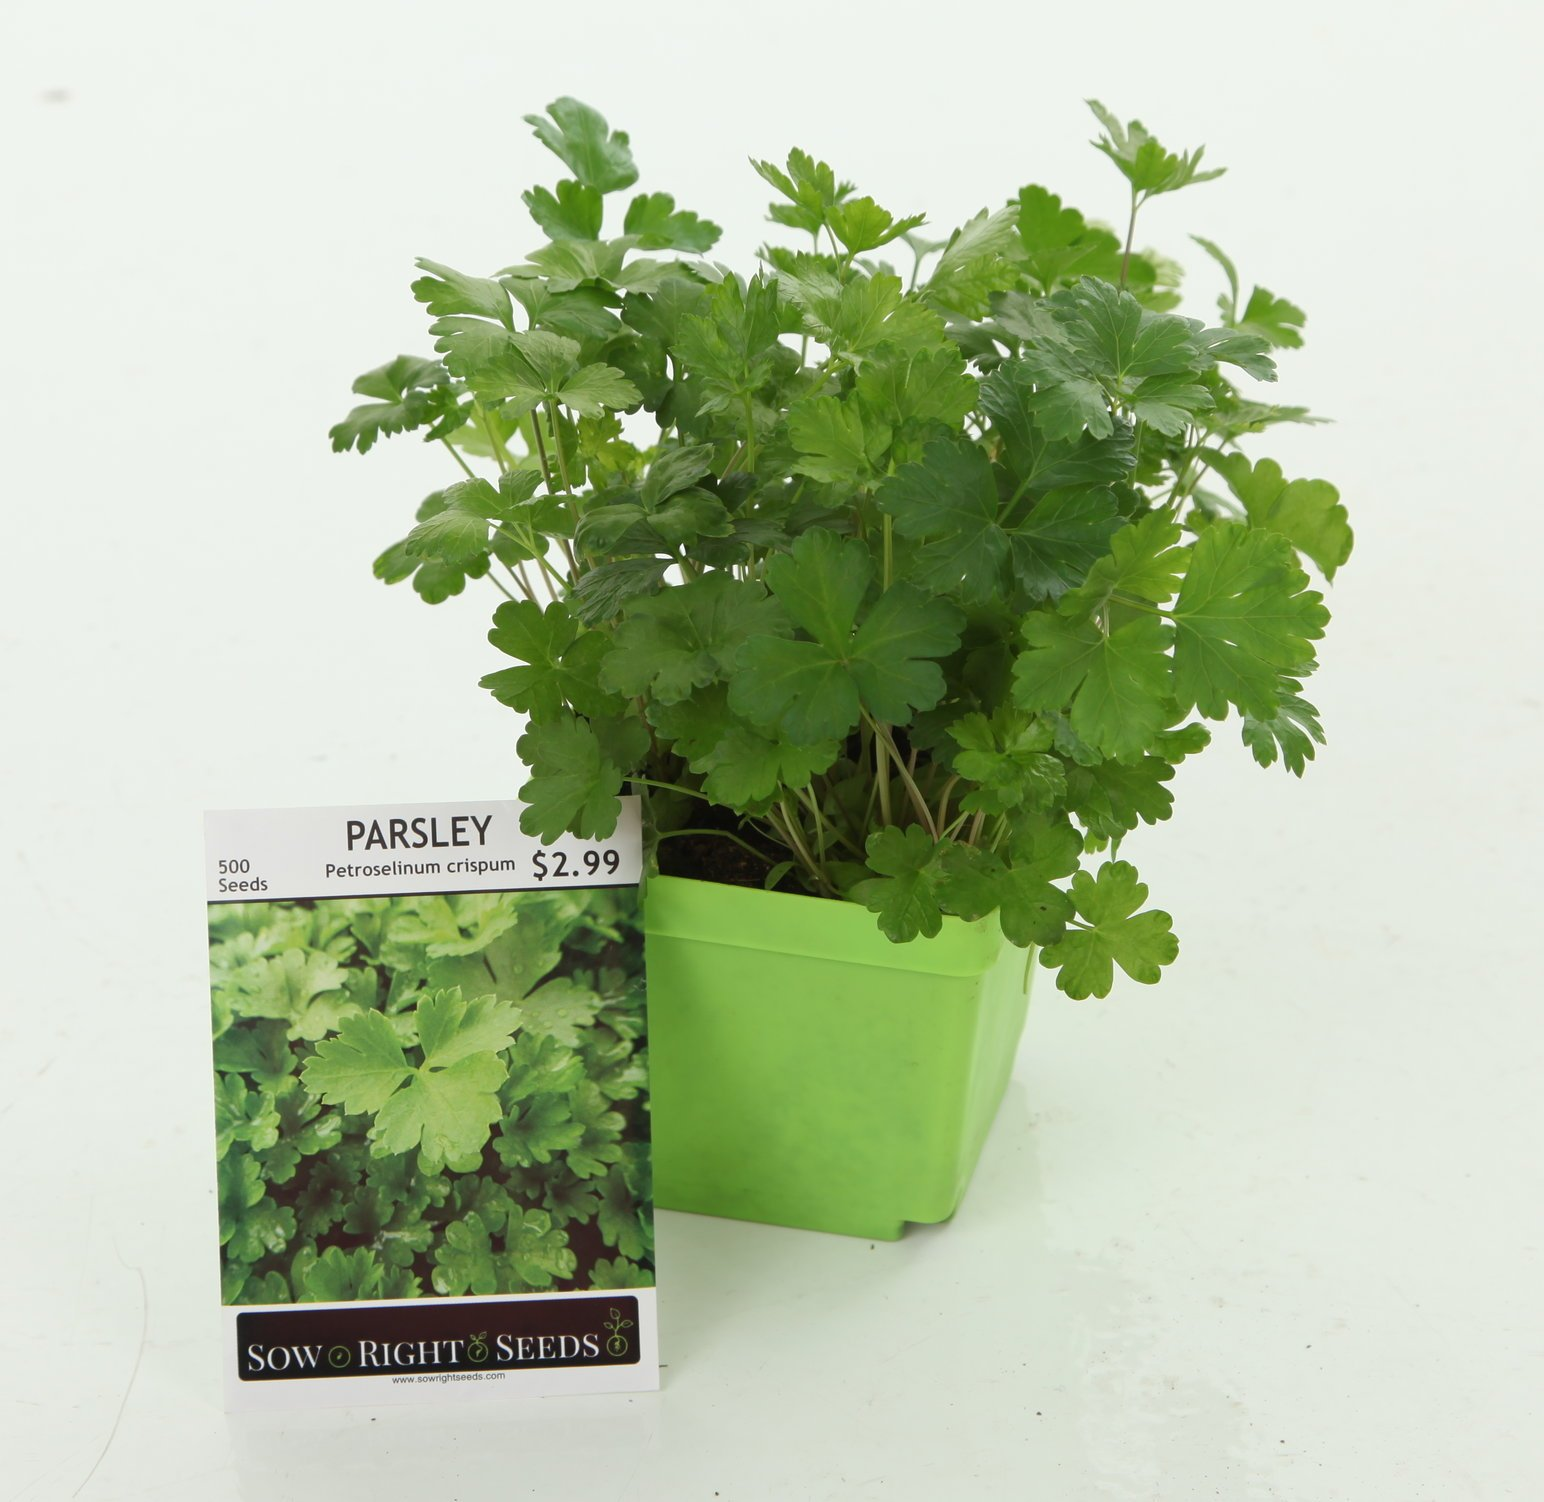 Indoor Herb Garden Starter Kit - Full Size Seed Packets of Basil, Chives, Cilantro, Oregano & Parsley - Everything You Need to Grow Herbs in Your Kitchen - Soil, Reusable Pots, Trays, Plant Markers, by Right Hardware (Image #6)